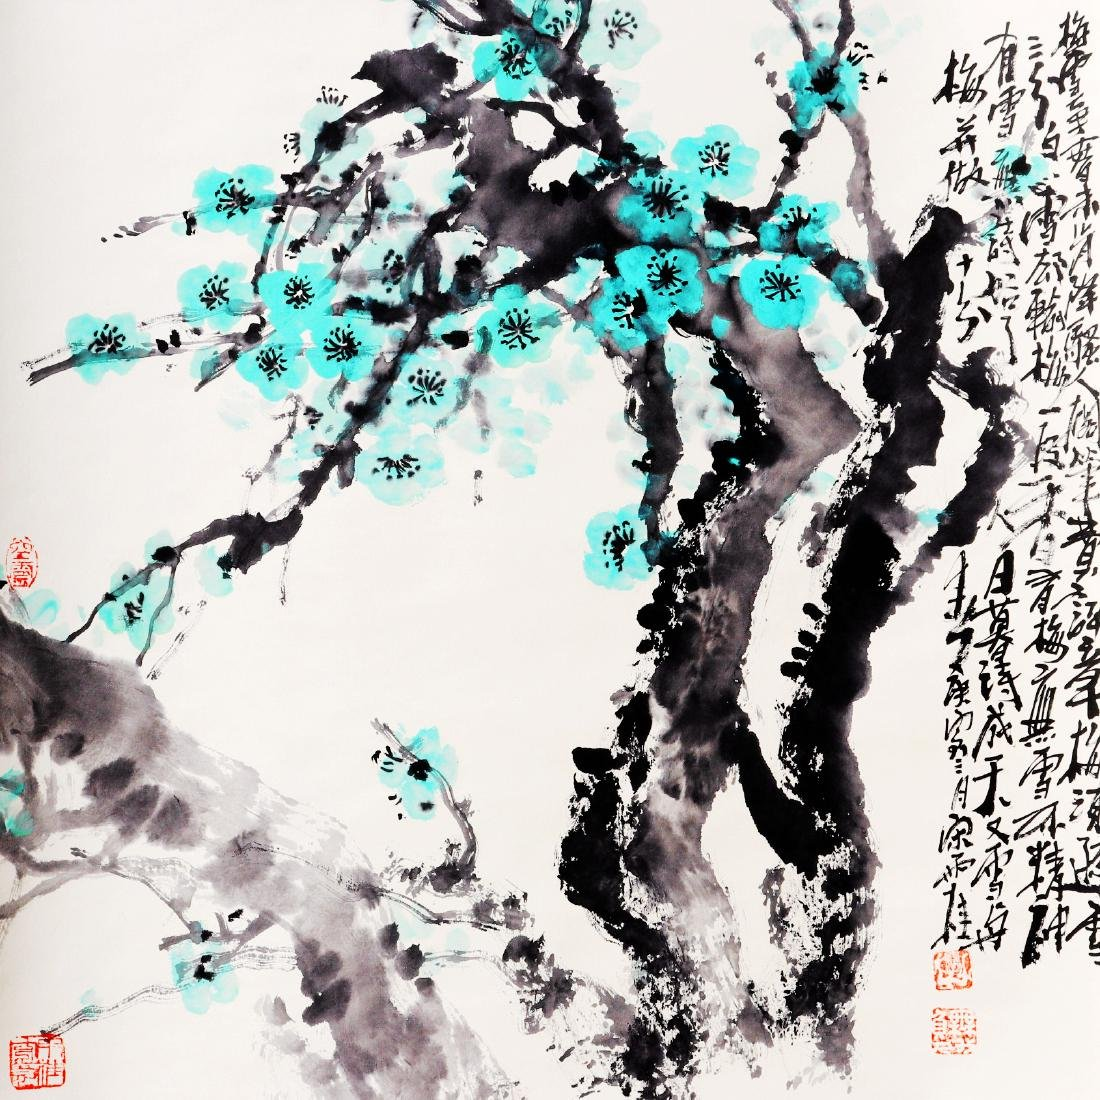 Attributed to song yu gui (Chinese Scroll Painting)